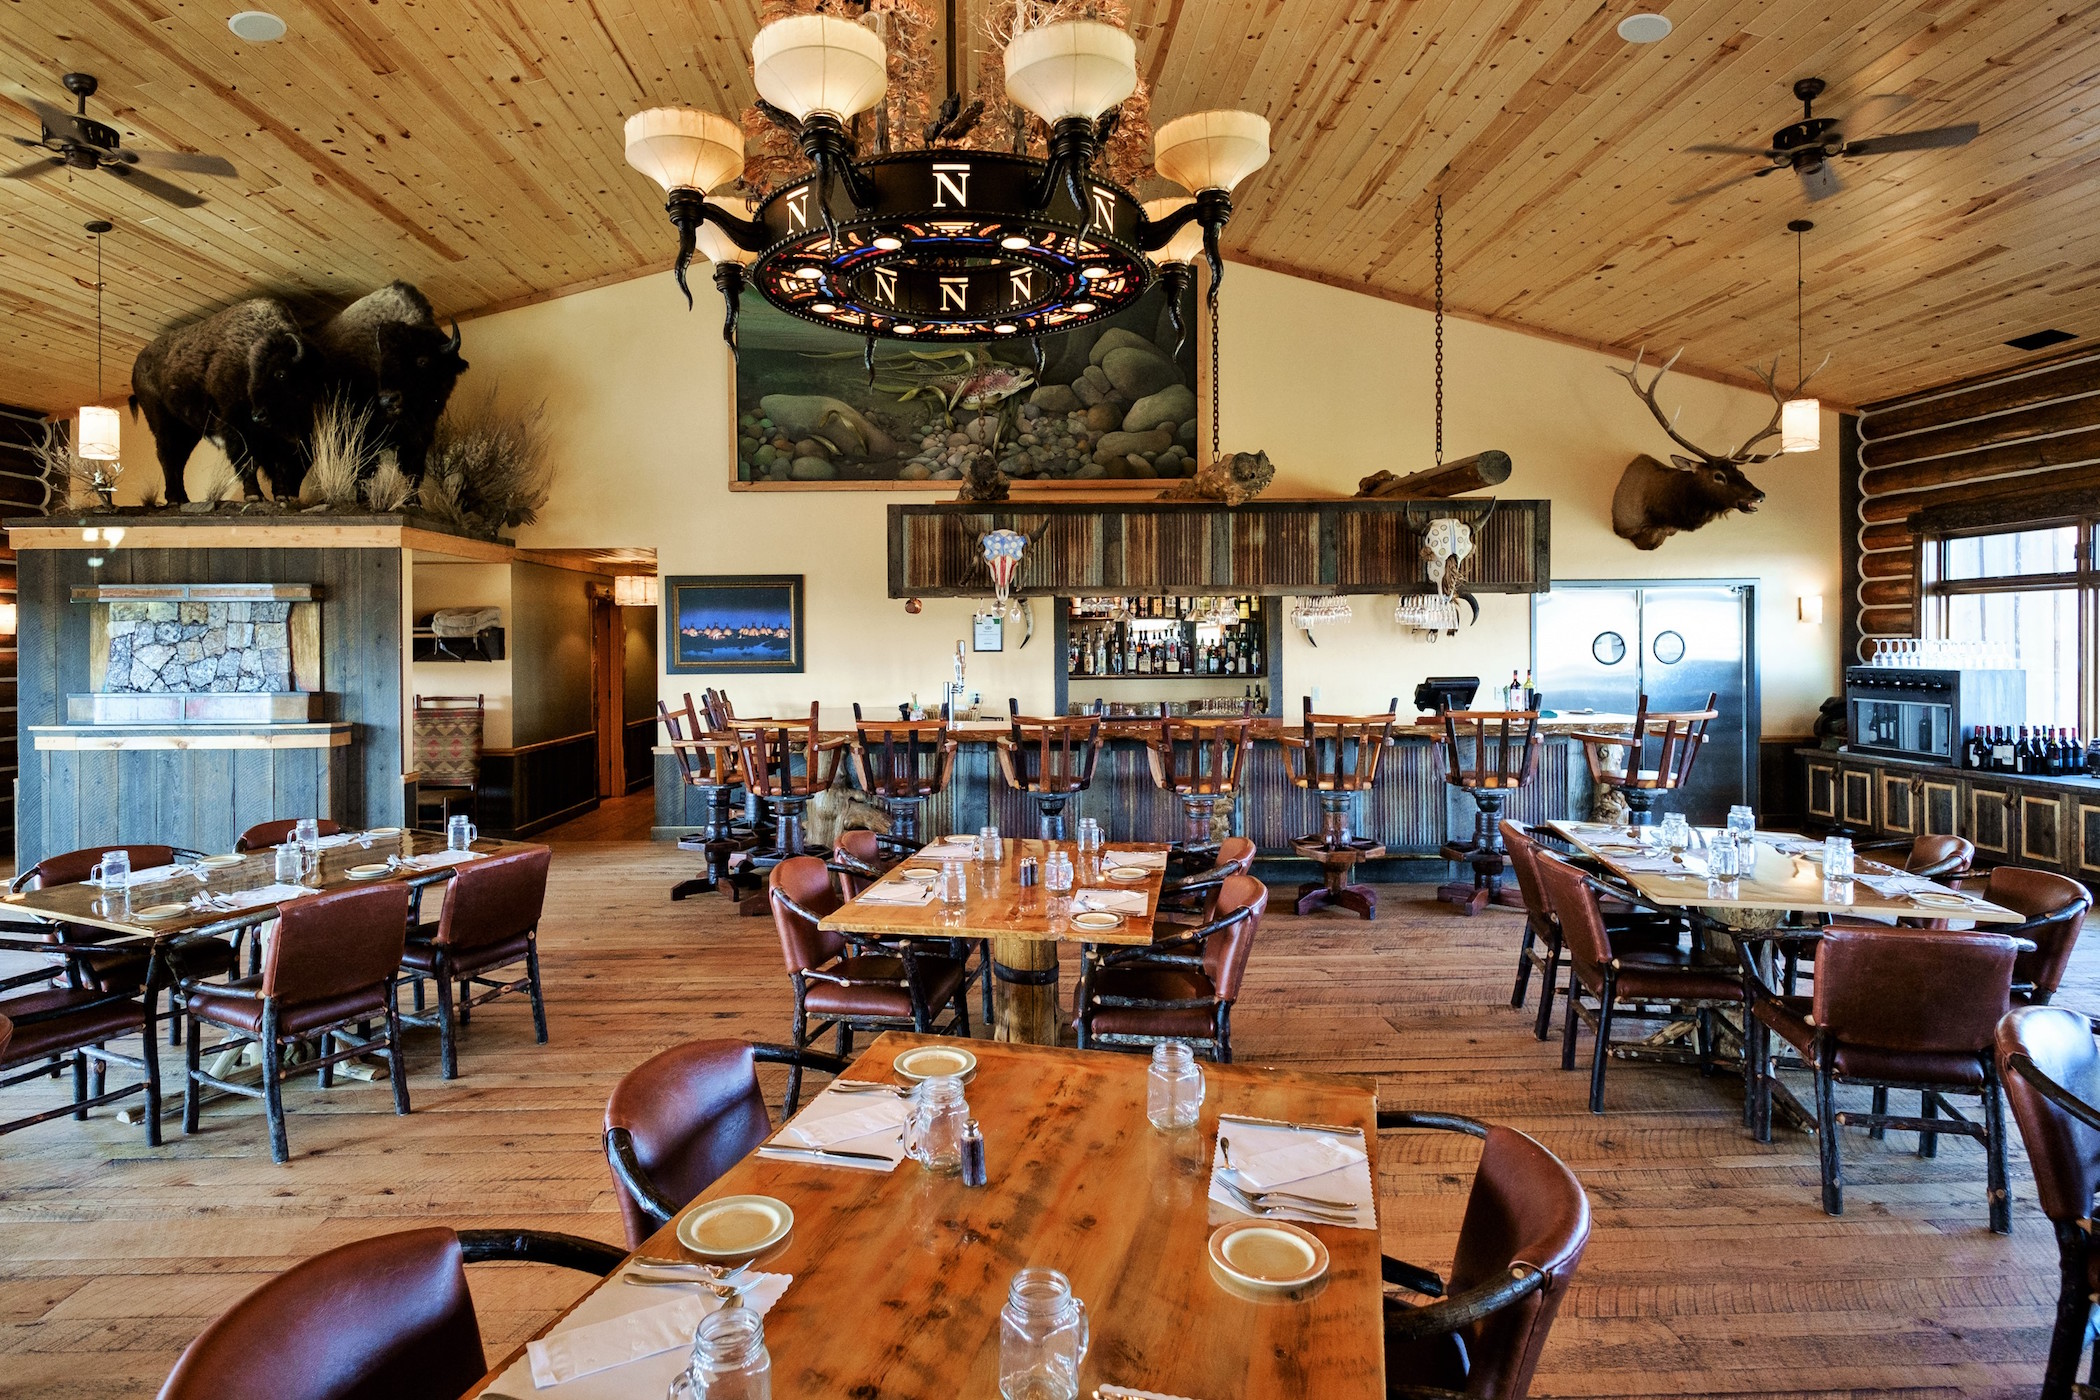 Bar N Ranch | © Tyler Sharp Photography/Courtesy of Bar N Ranch